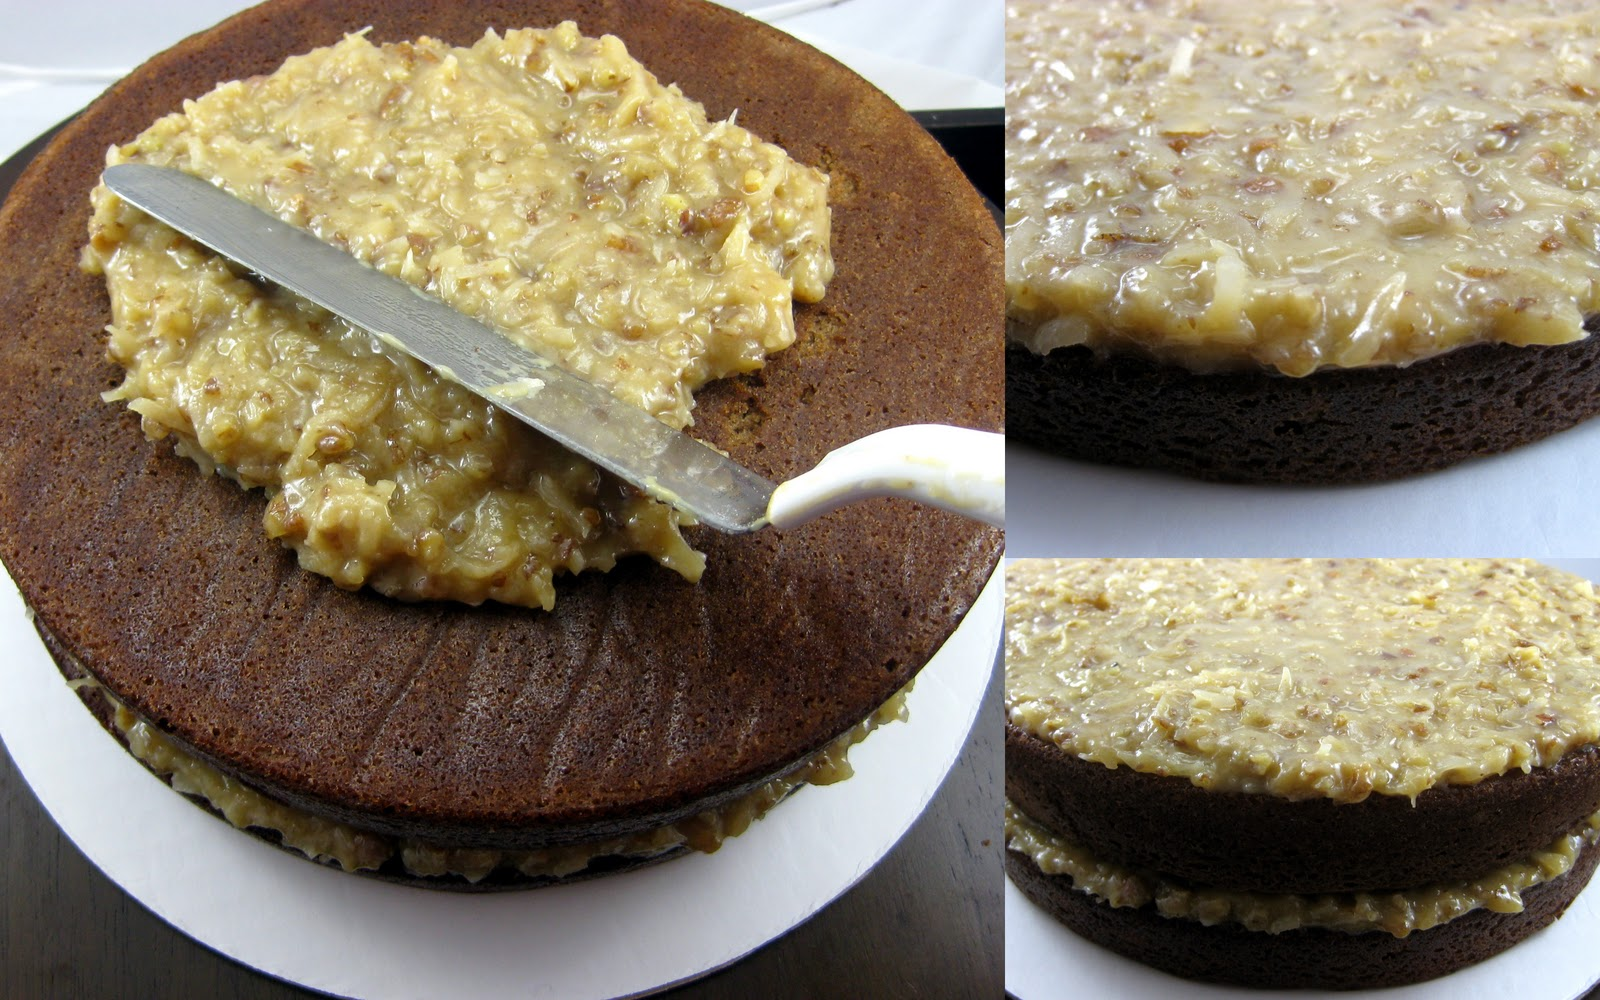 Karis' Kitchen | A Vegetarian Food Blog: 2-Layer German Chocolate Cake